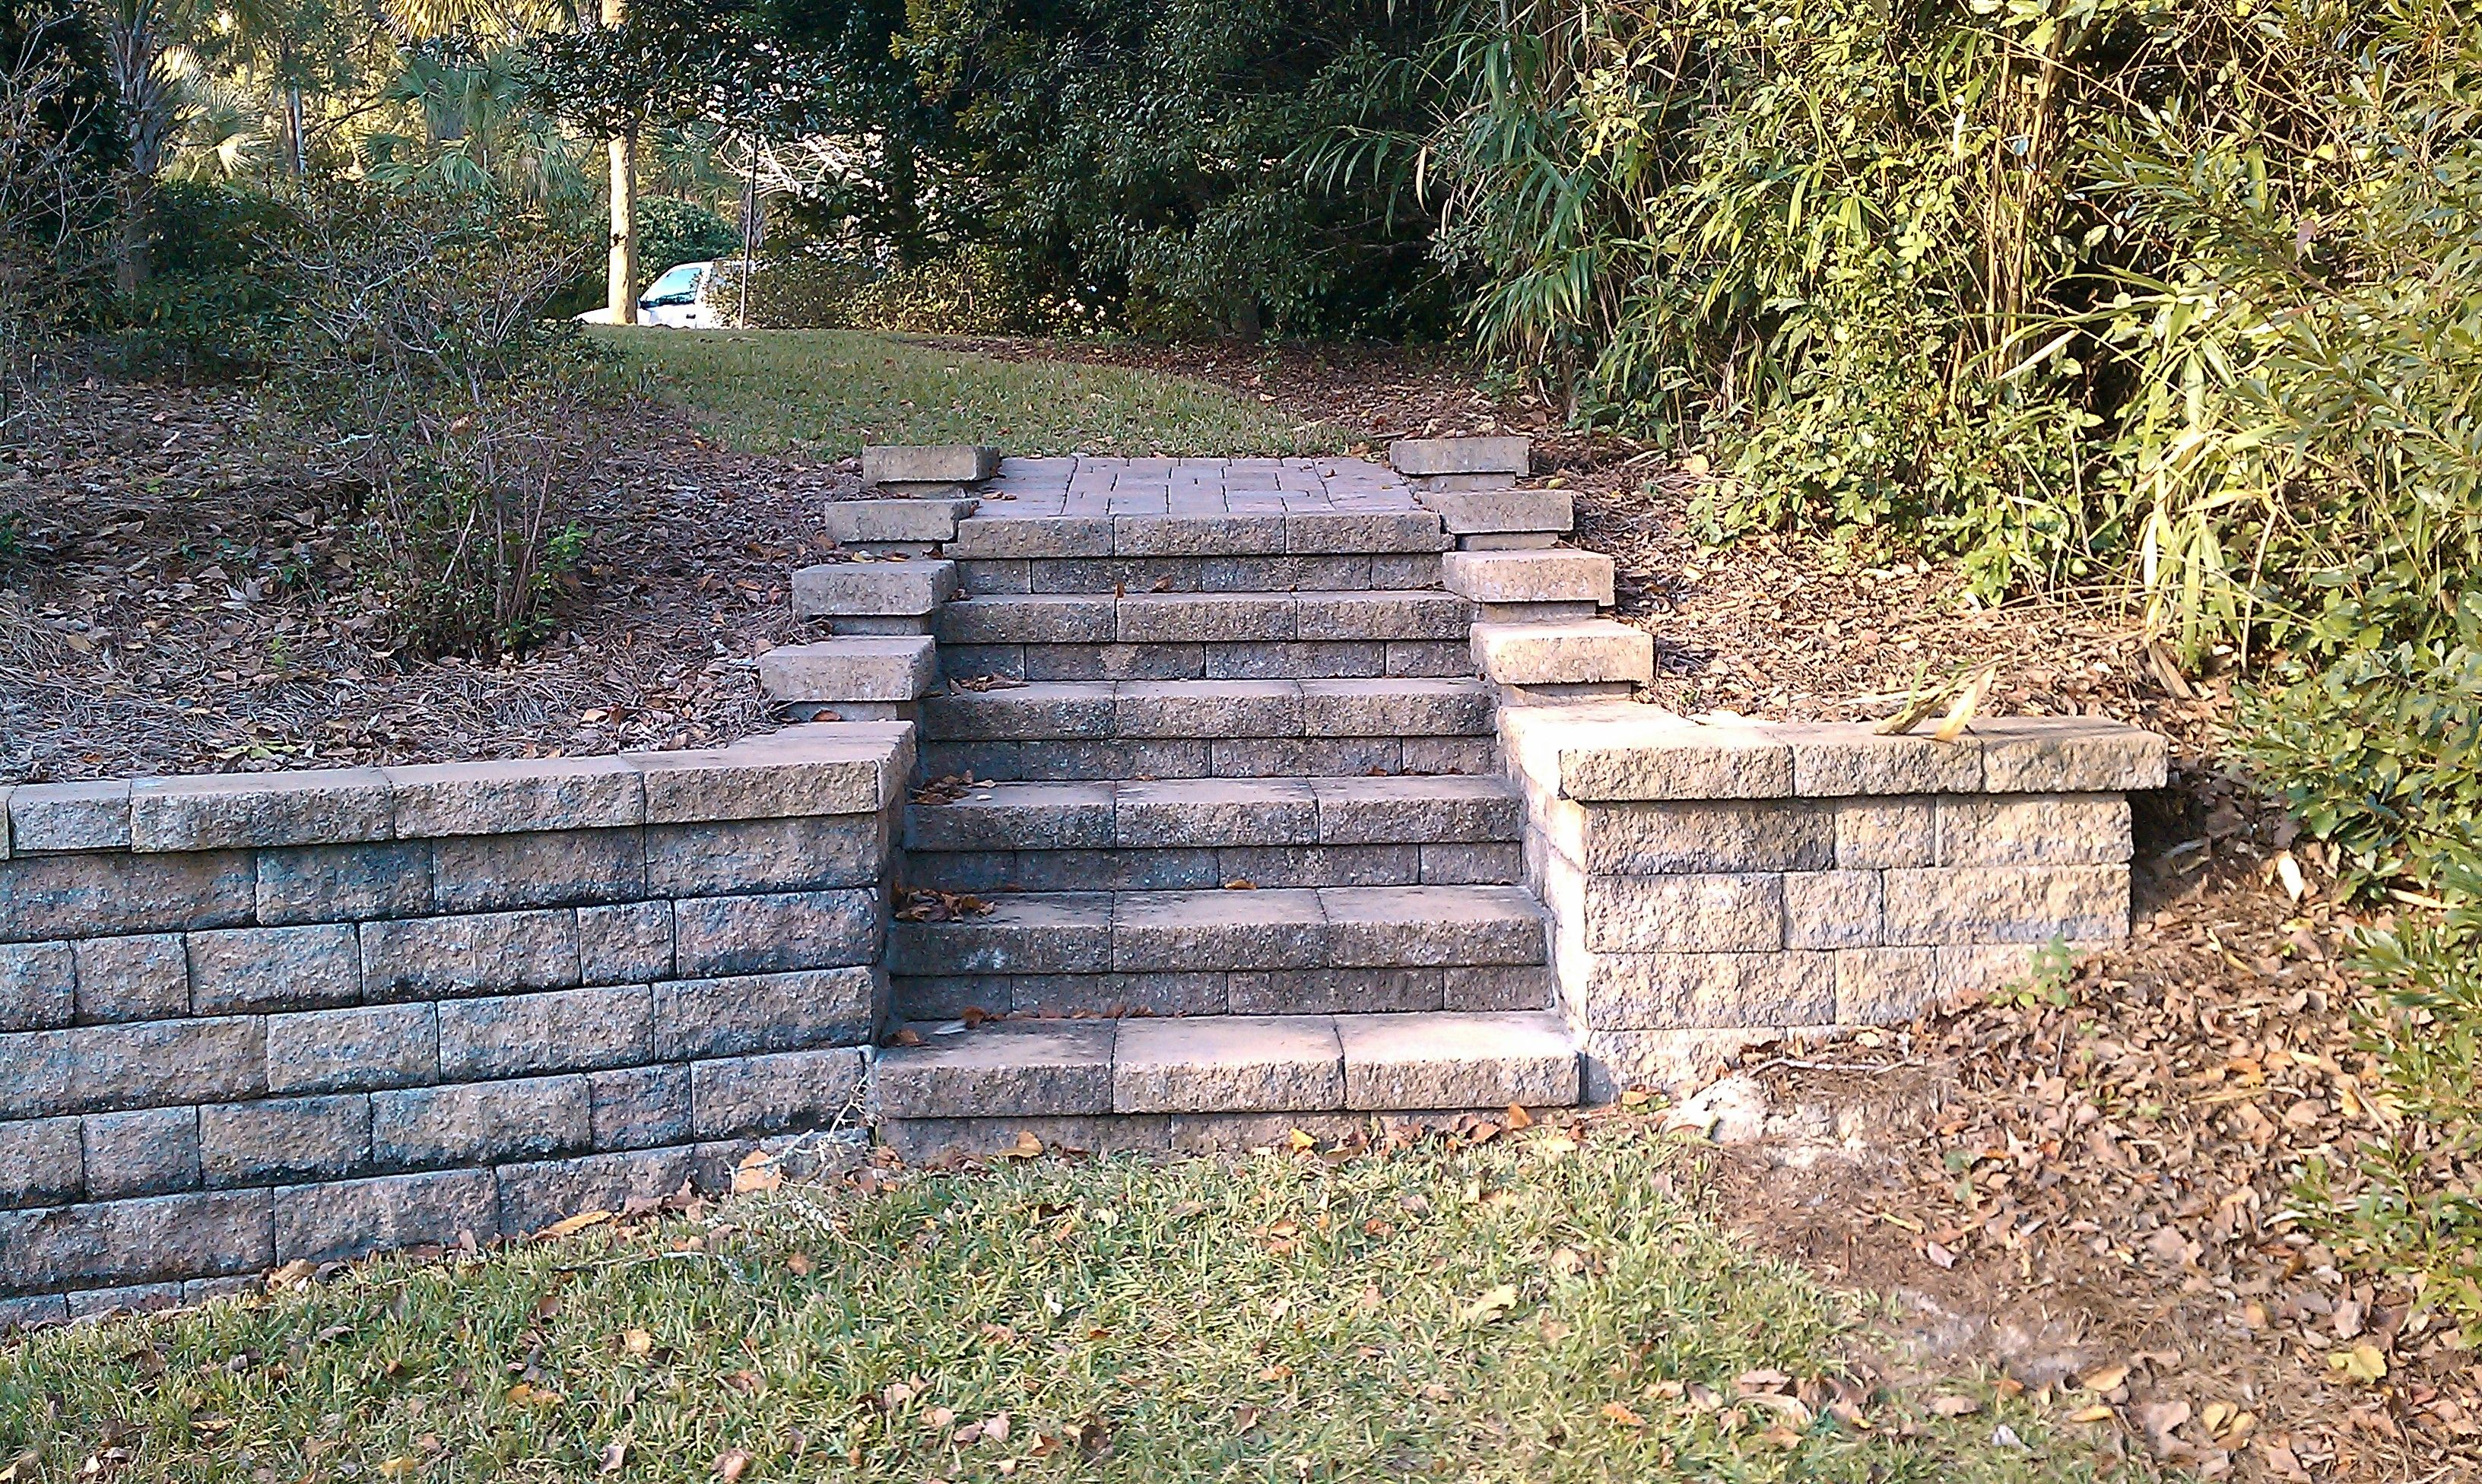 Belgard Celtik Wall Block And Cap System Was Used To Create A Two Tiered Yard Steps Flatter Backyard